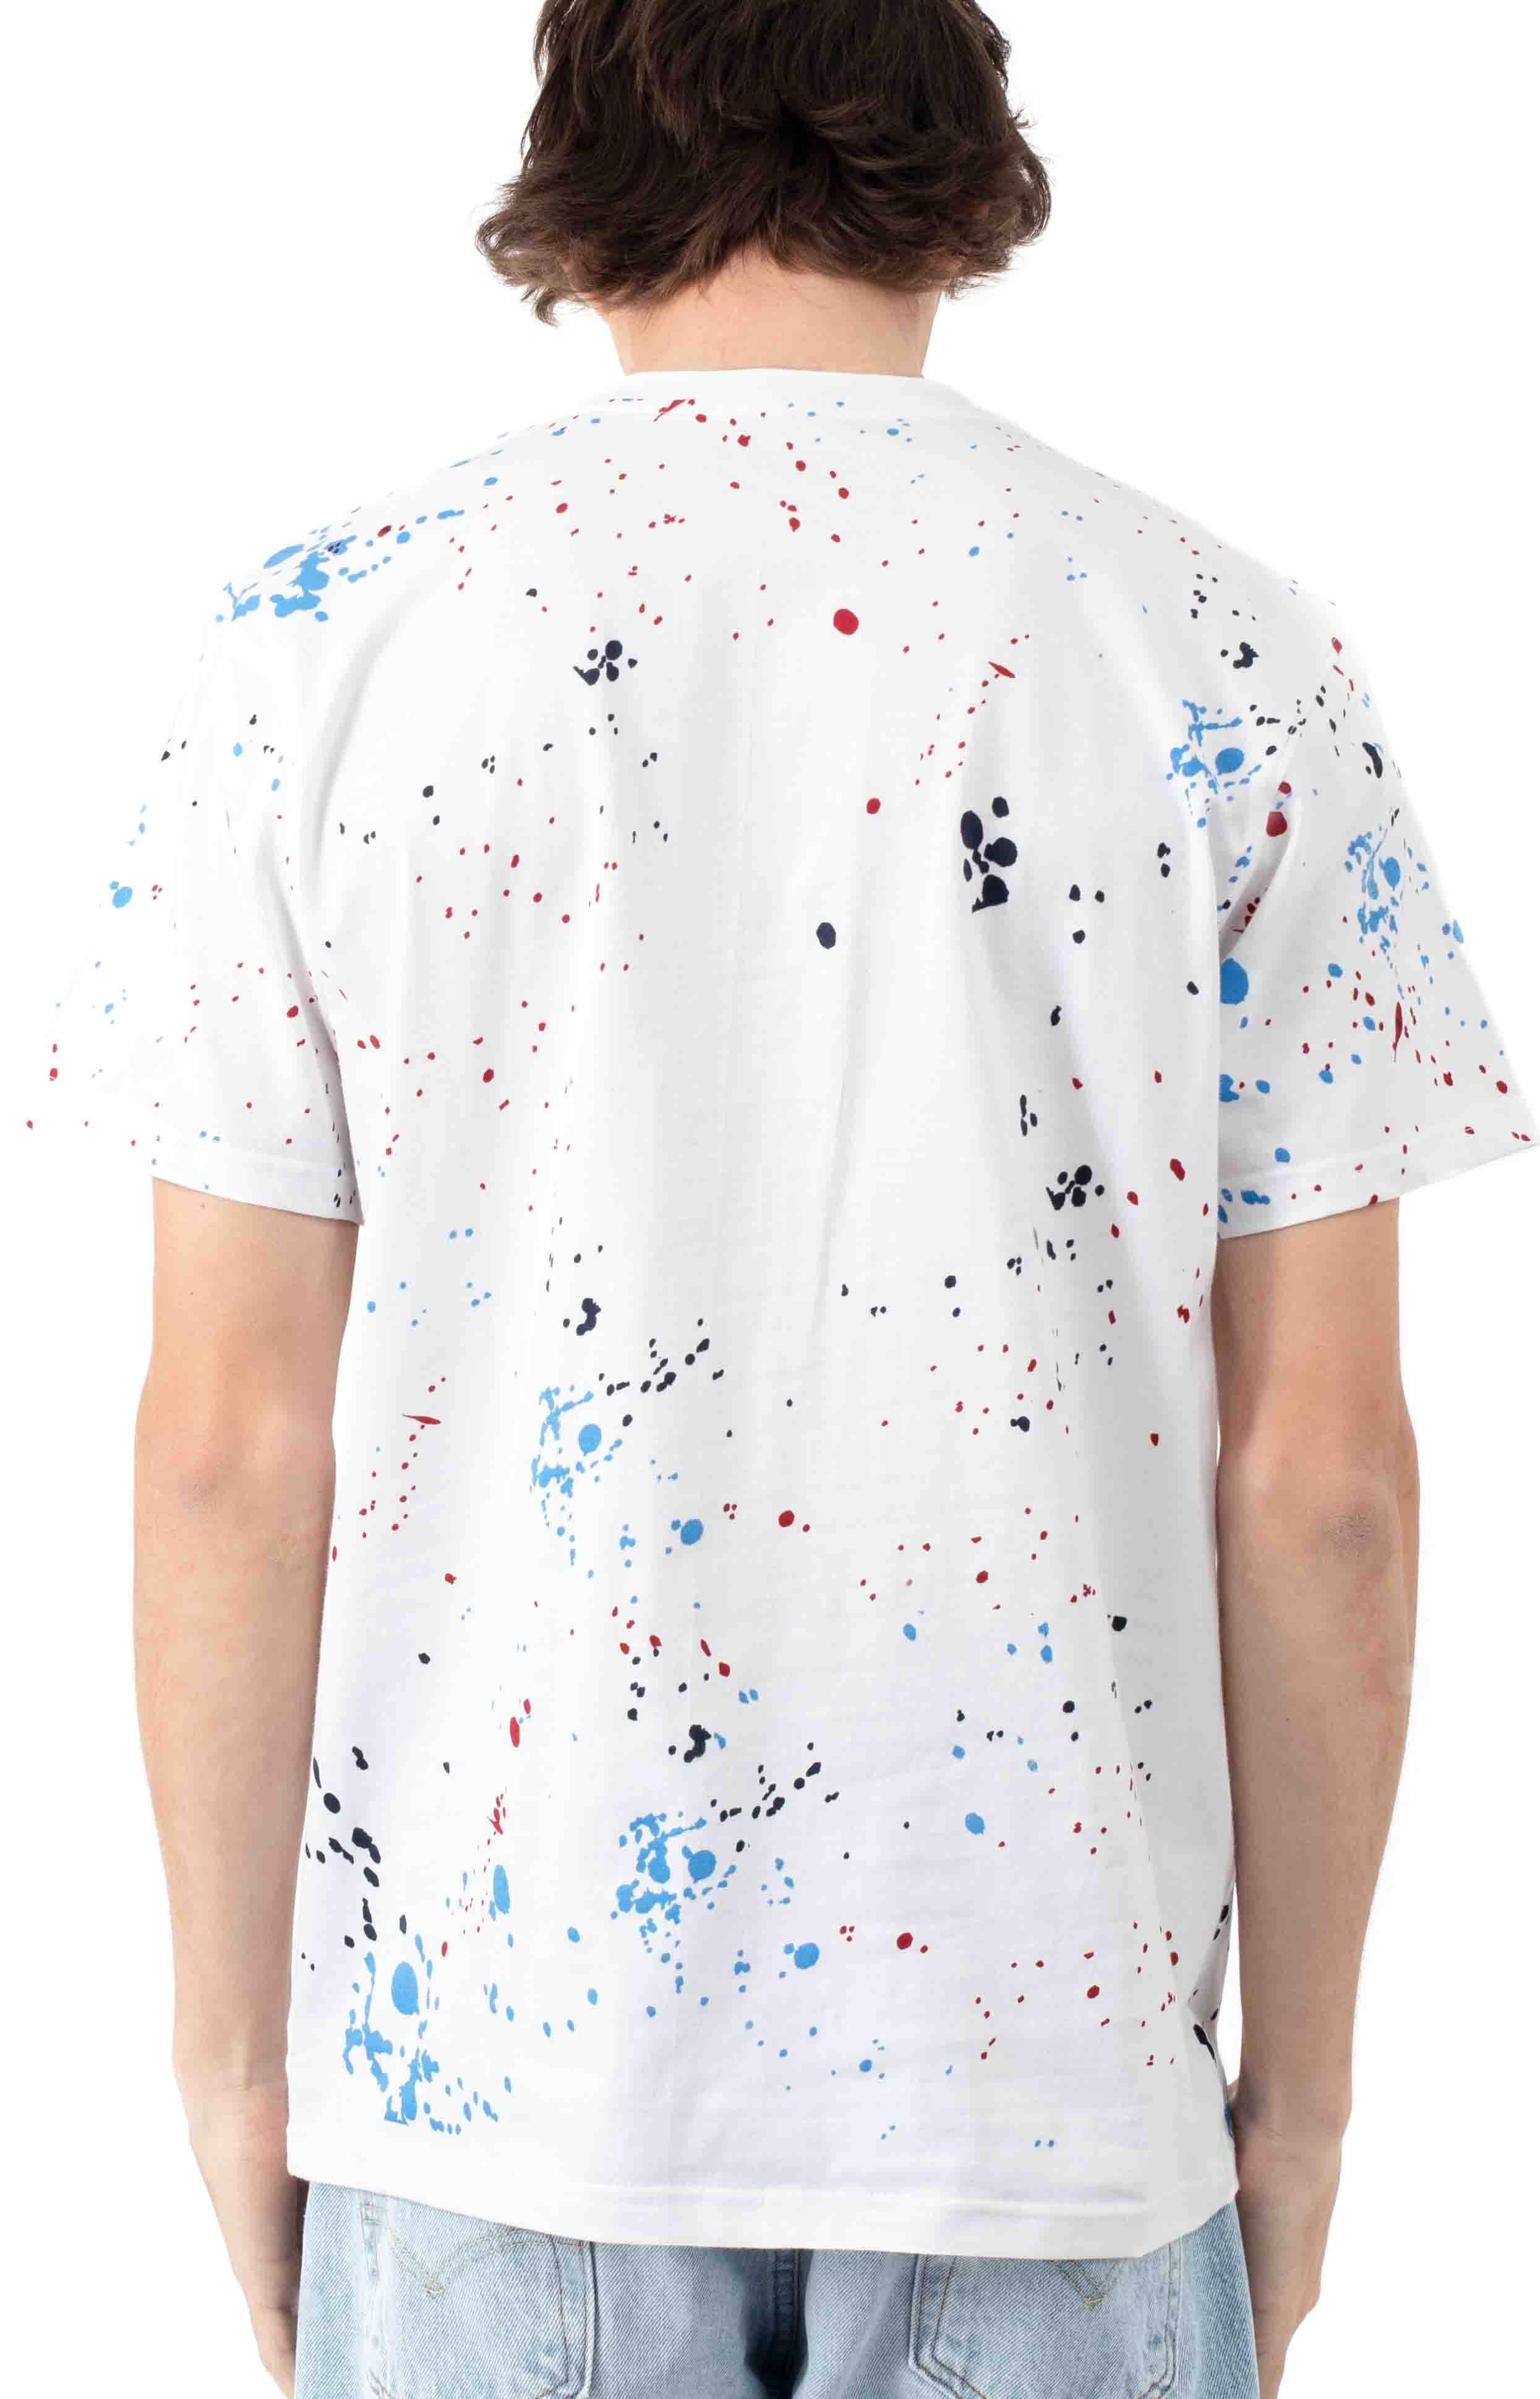 Drip Embroidered Pigeon T-Shirt - White  3